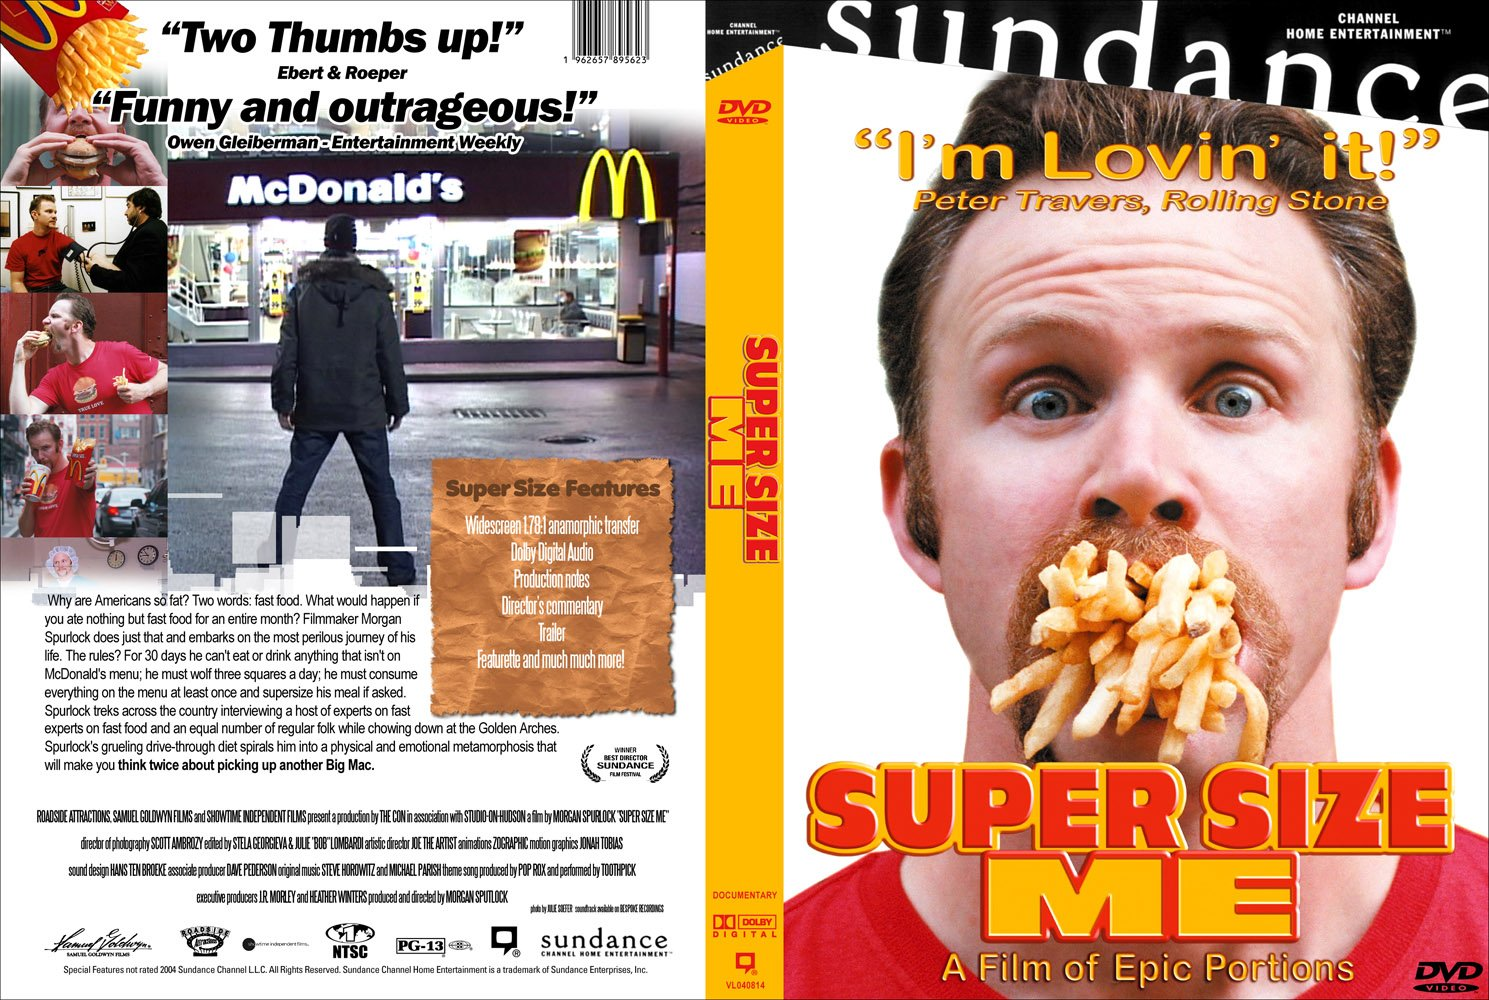 fast food and poor nutrition in the film supersize me by morgan spurlock Super size me is a lively and accessible account of director morgan spurlock's attempt to spend 30 days eating nothing but mcdonald's food-for breakfast super size me directed by morgan spurlock by robert davis | july 20, 2004 it makes fast food look disgusting.